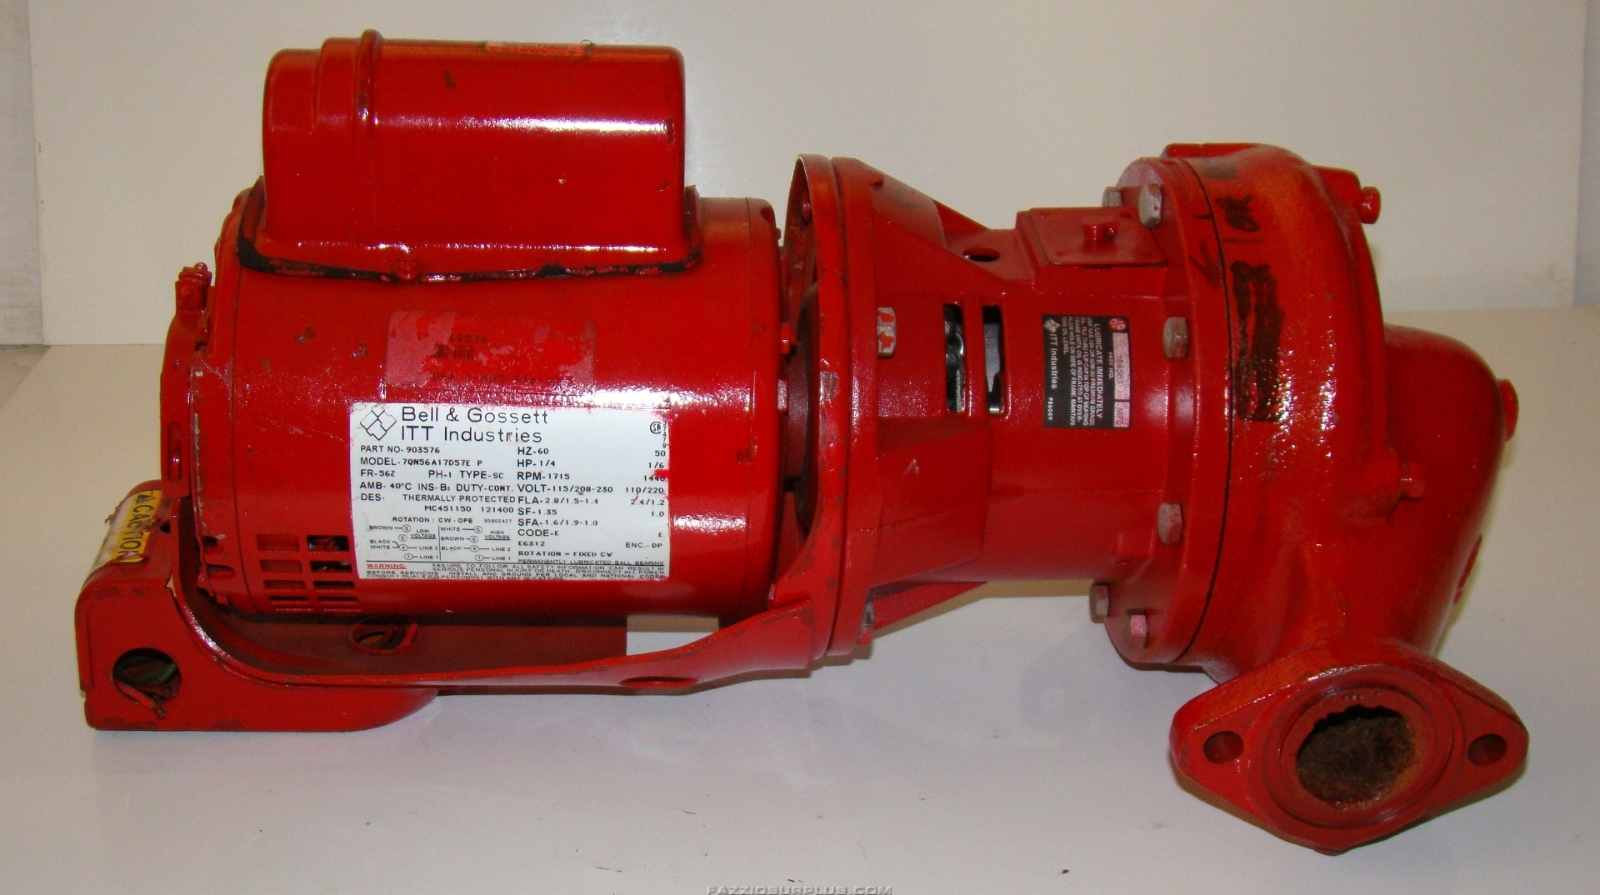 Bell Gossett 3 Phase Wiring Diagram Ask Answer For Heater Blower Motor 12 Volts Get Free Image About